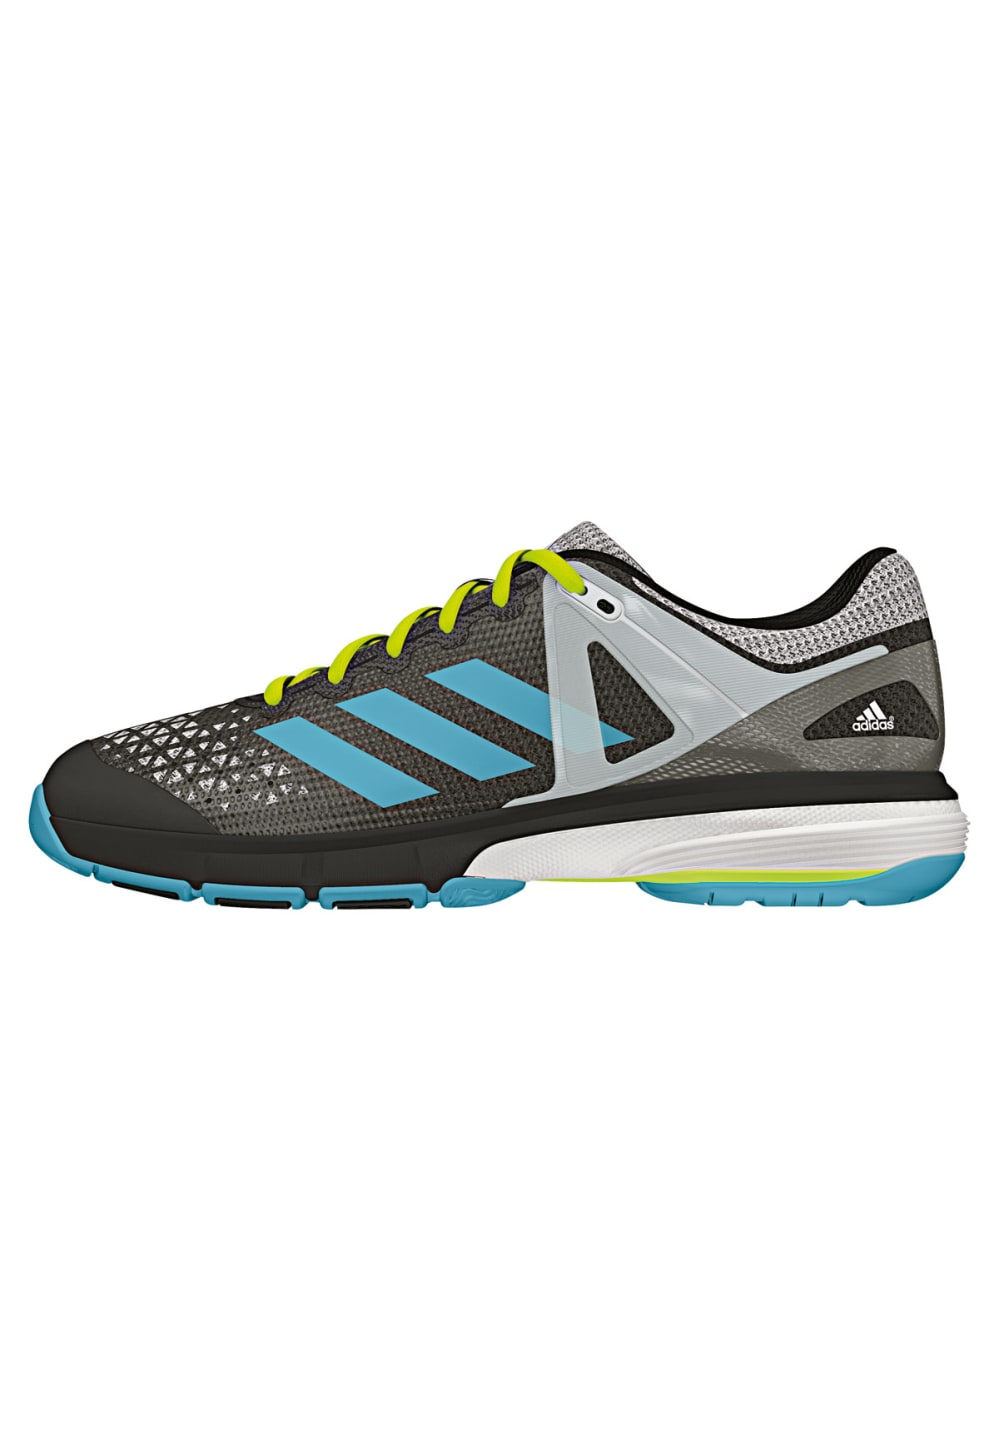 sports shoes a6552 263a3 Next. adidas. Court Stabil 13 - Handball shoes for Women. €99.95. incl.  VAT, plus shipping costs